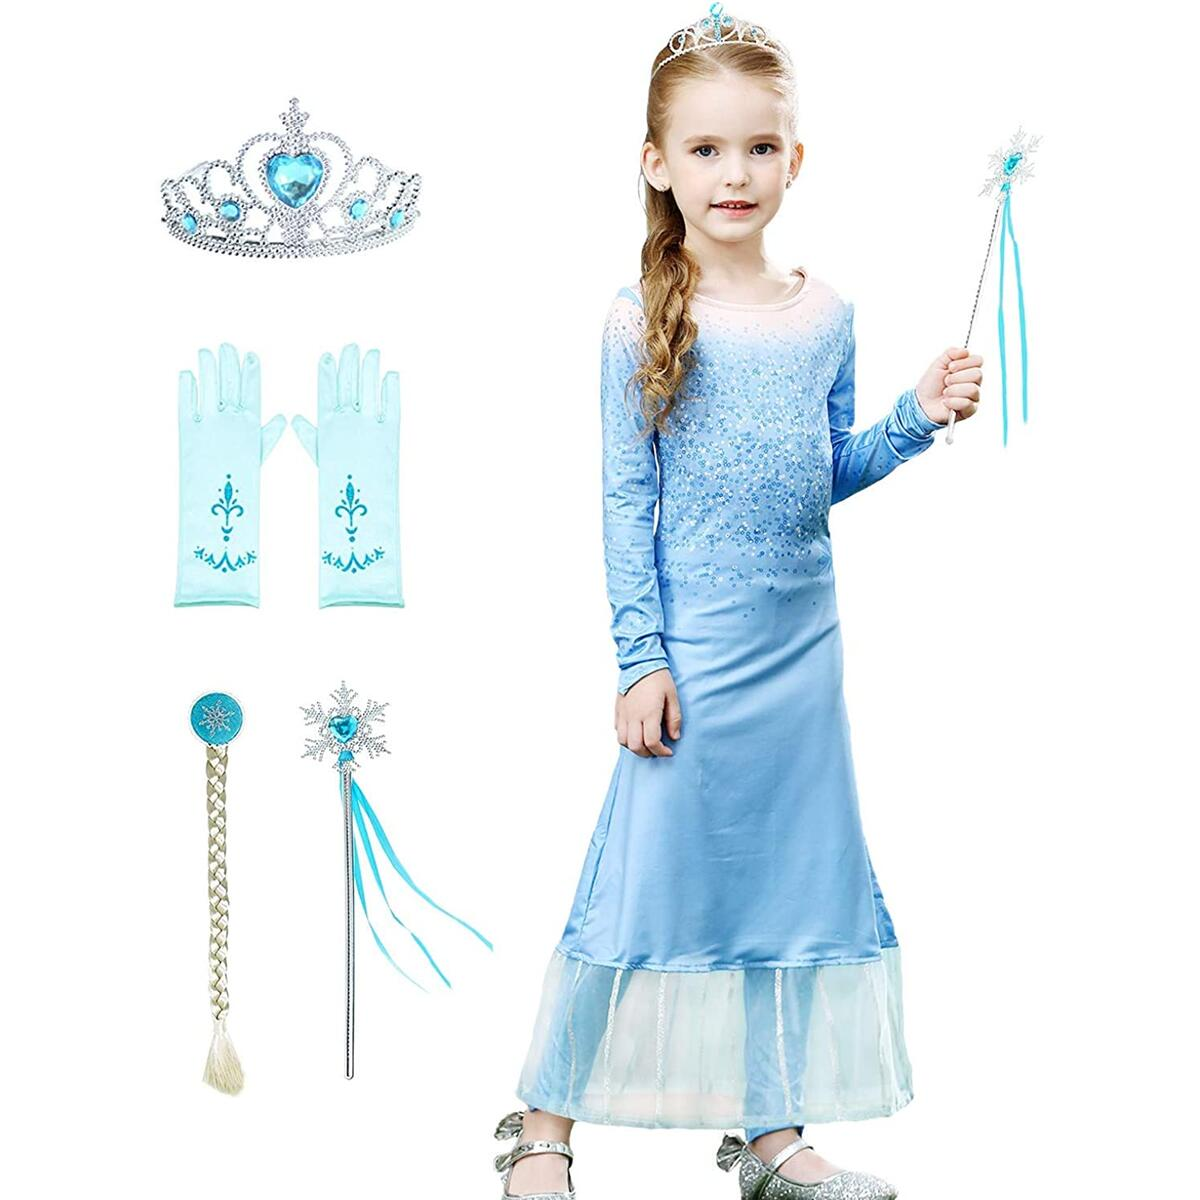 Princess Dress Costume Act 2 - Girls Halloween Birthday Party for Toddler Dress Up